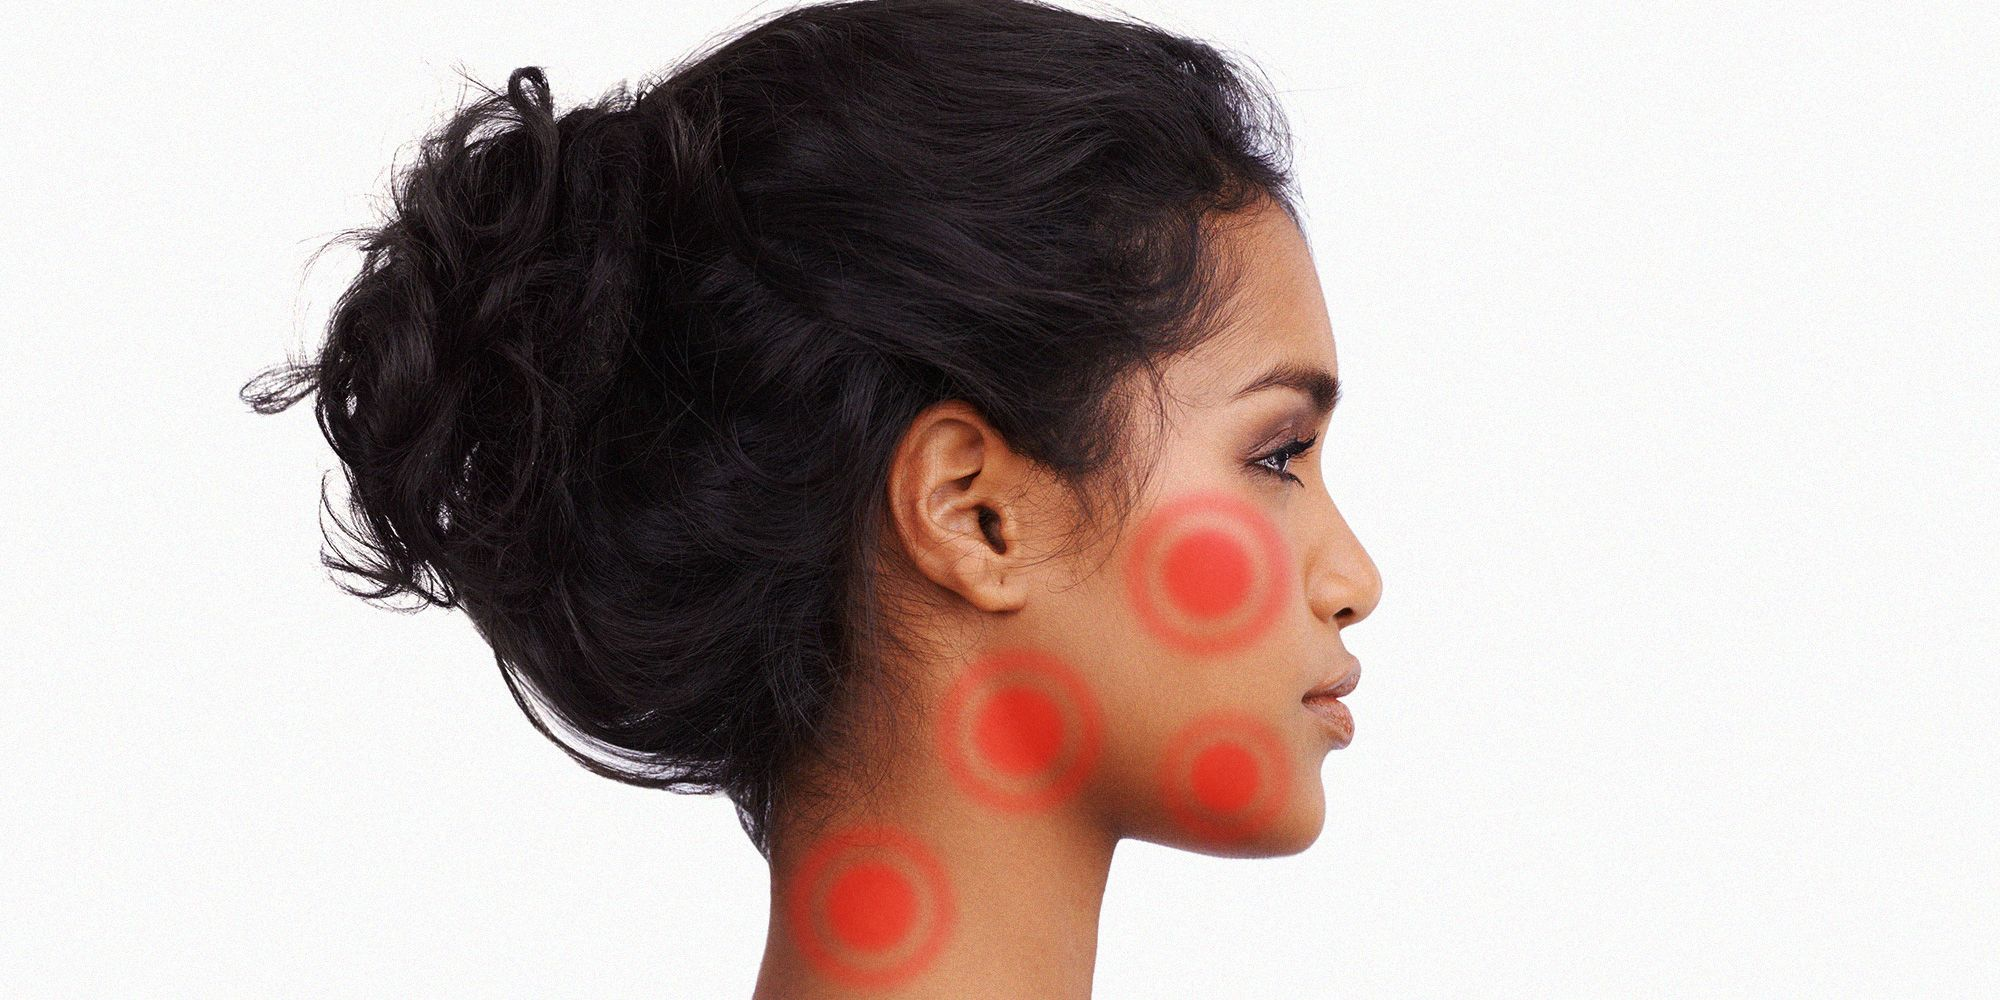 how to get redness out of pimples